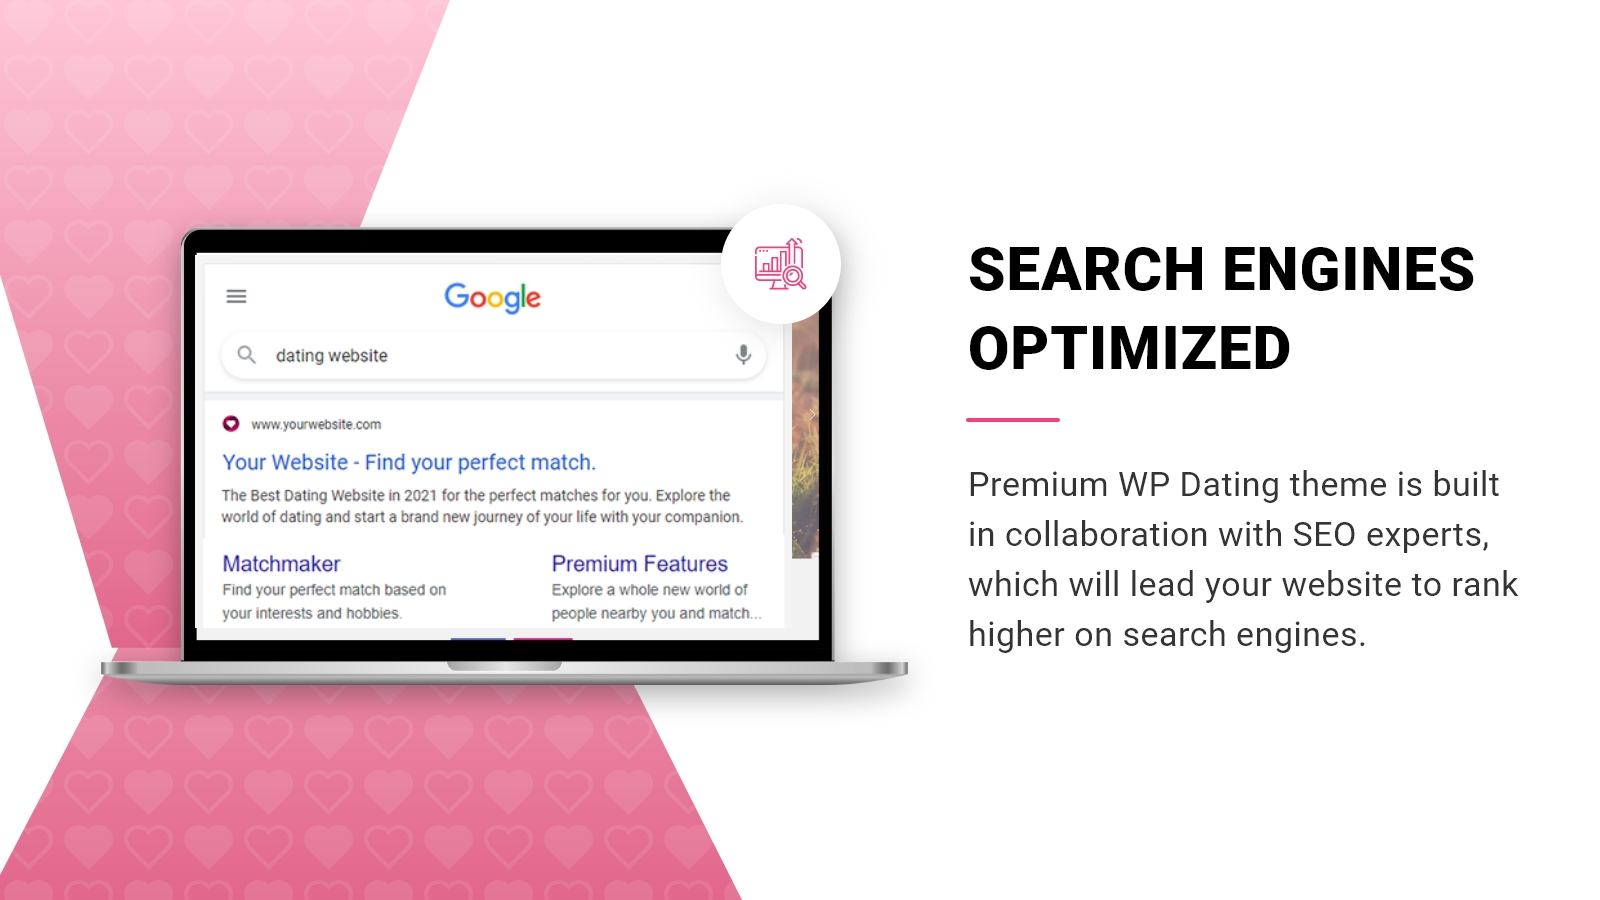 Premium WP Dating theme is search engine optimized